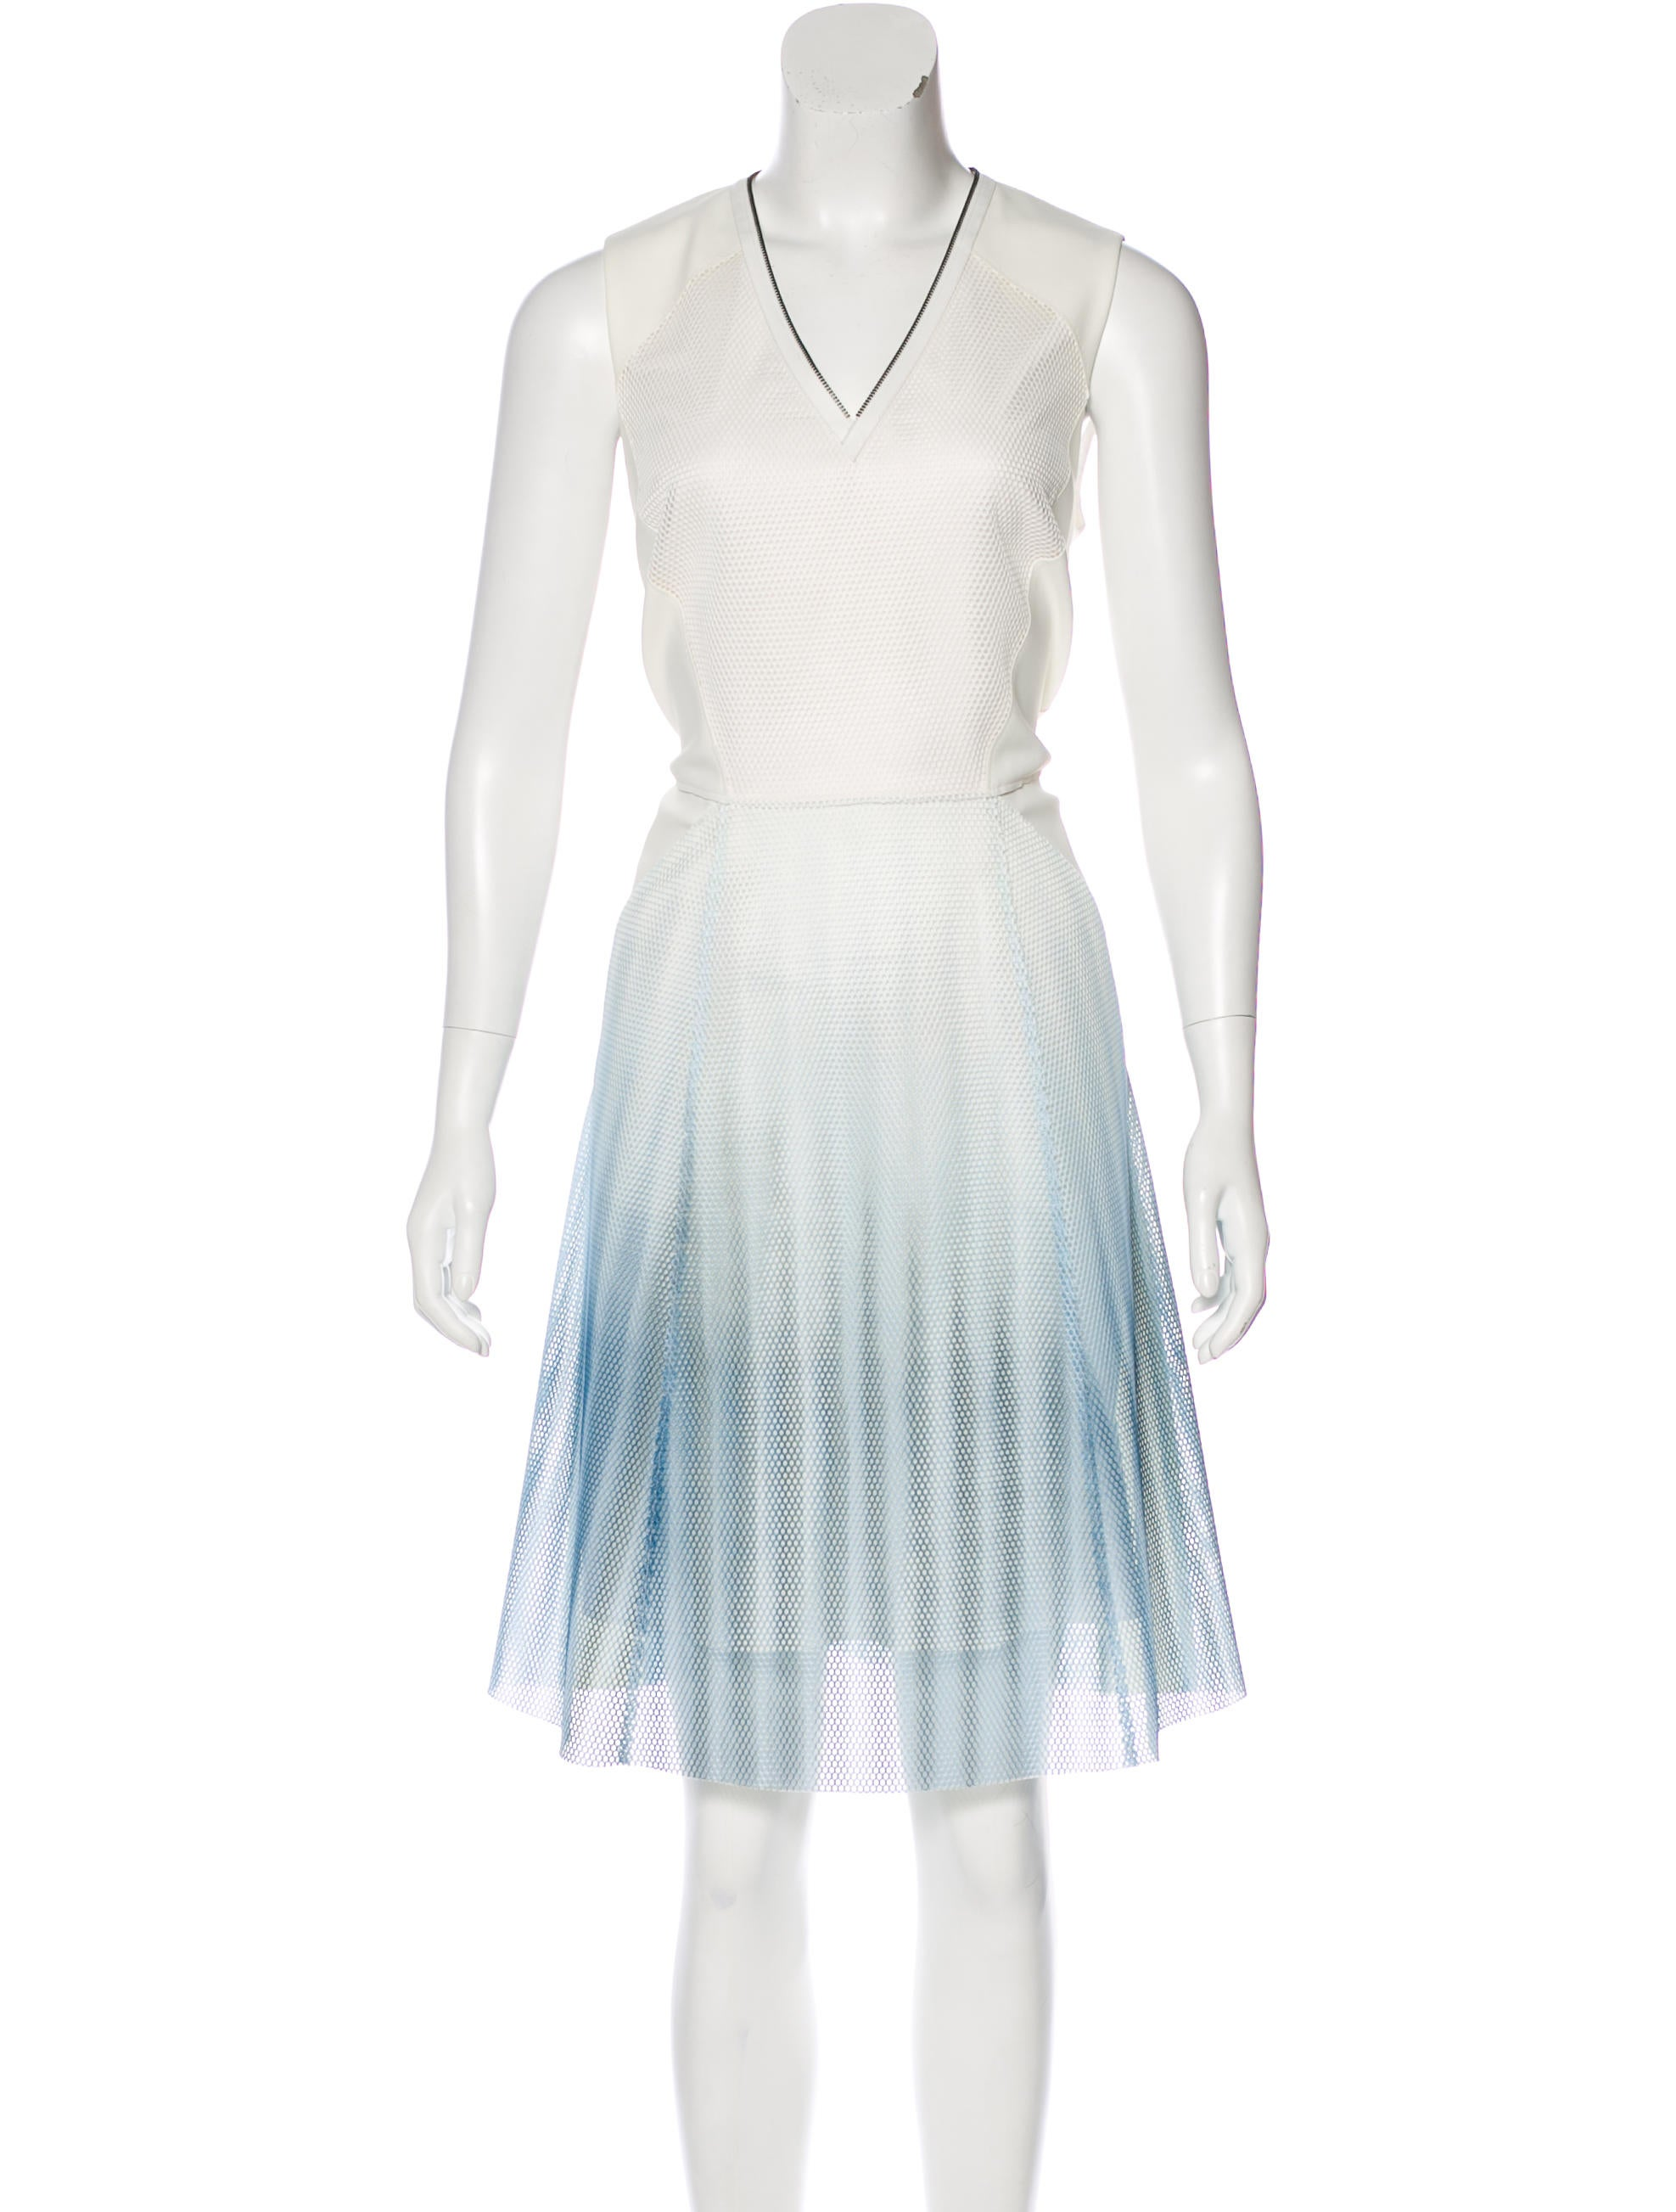 e1ad8b789726 Elie Tahari Mesh-Accented Ombré Dress w/ Tags - Clothing - WEL21126 ...